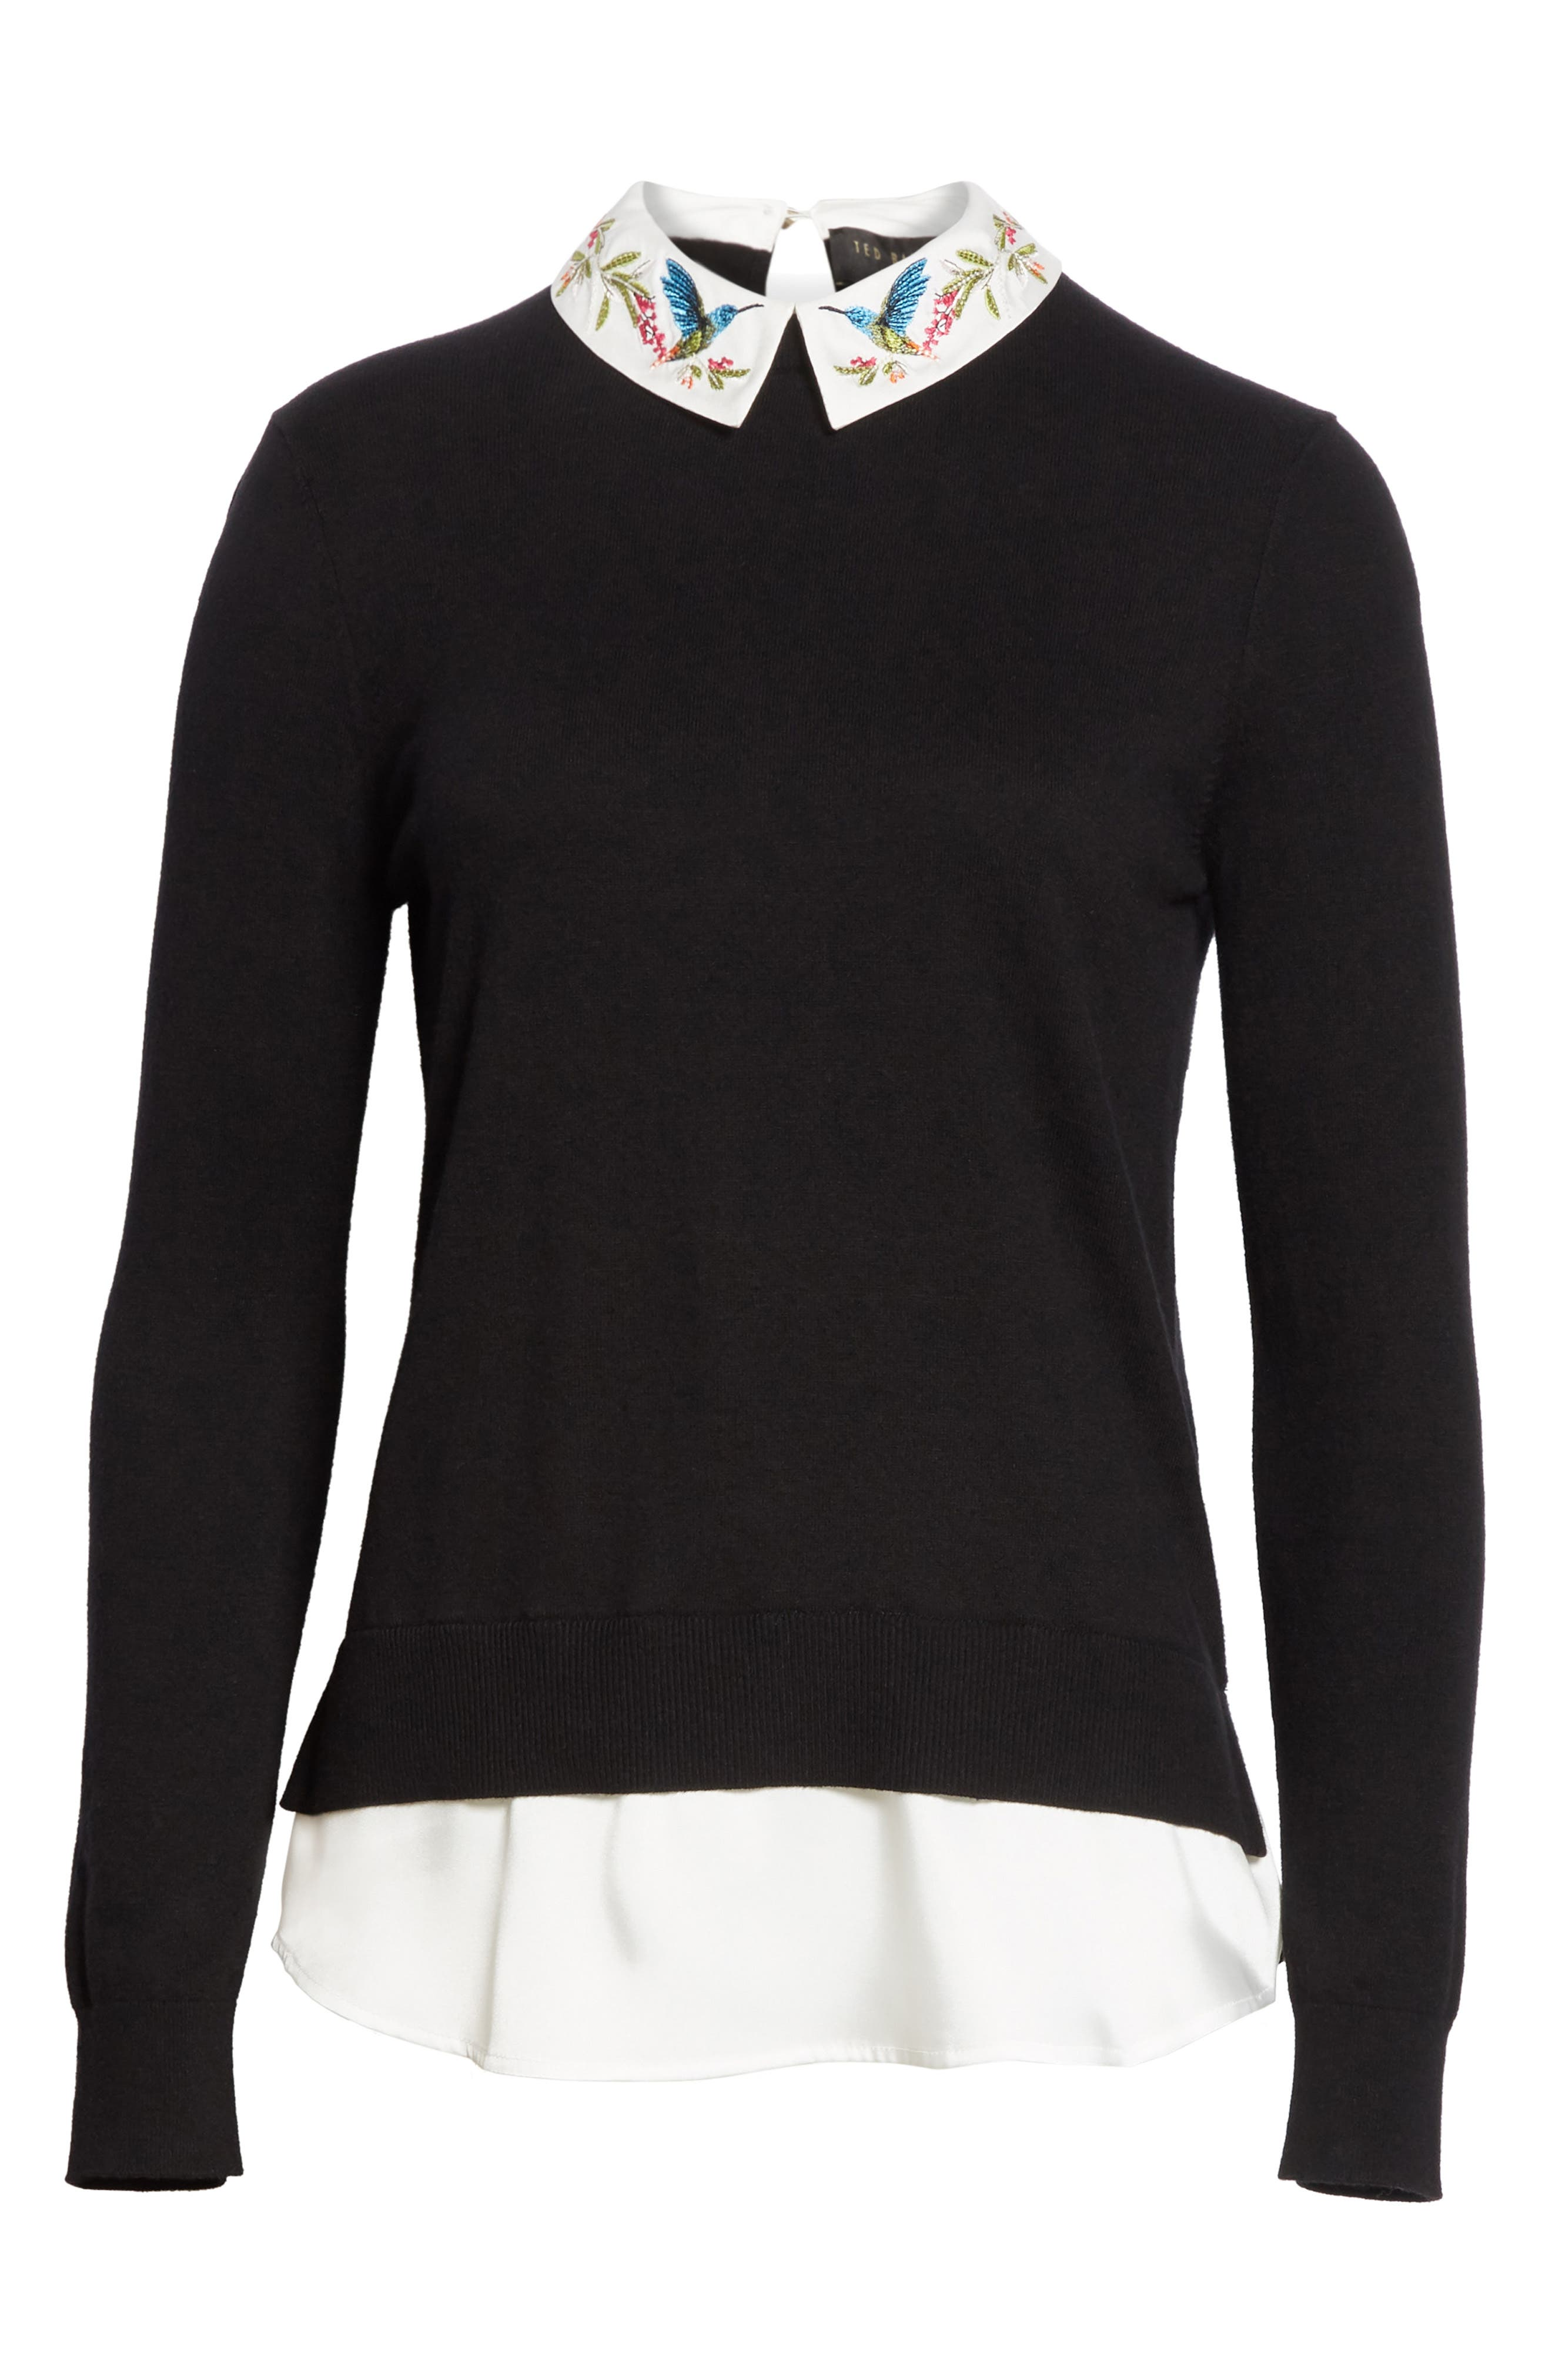 Highgrove Layered Look Sweater,                             Alternate thumbnail 6, color,